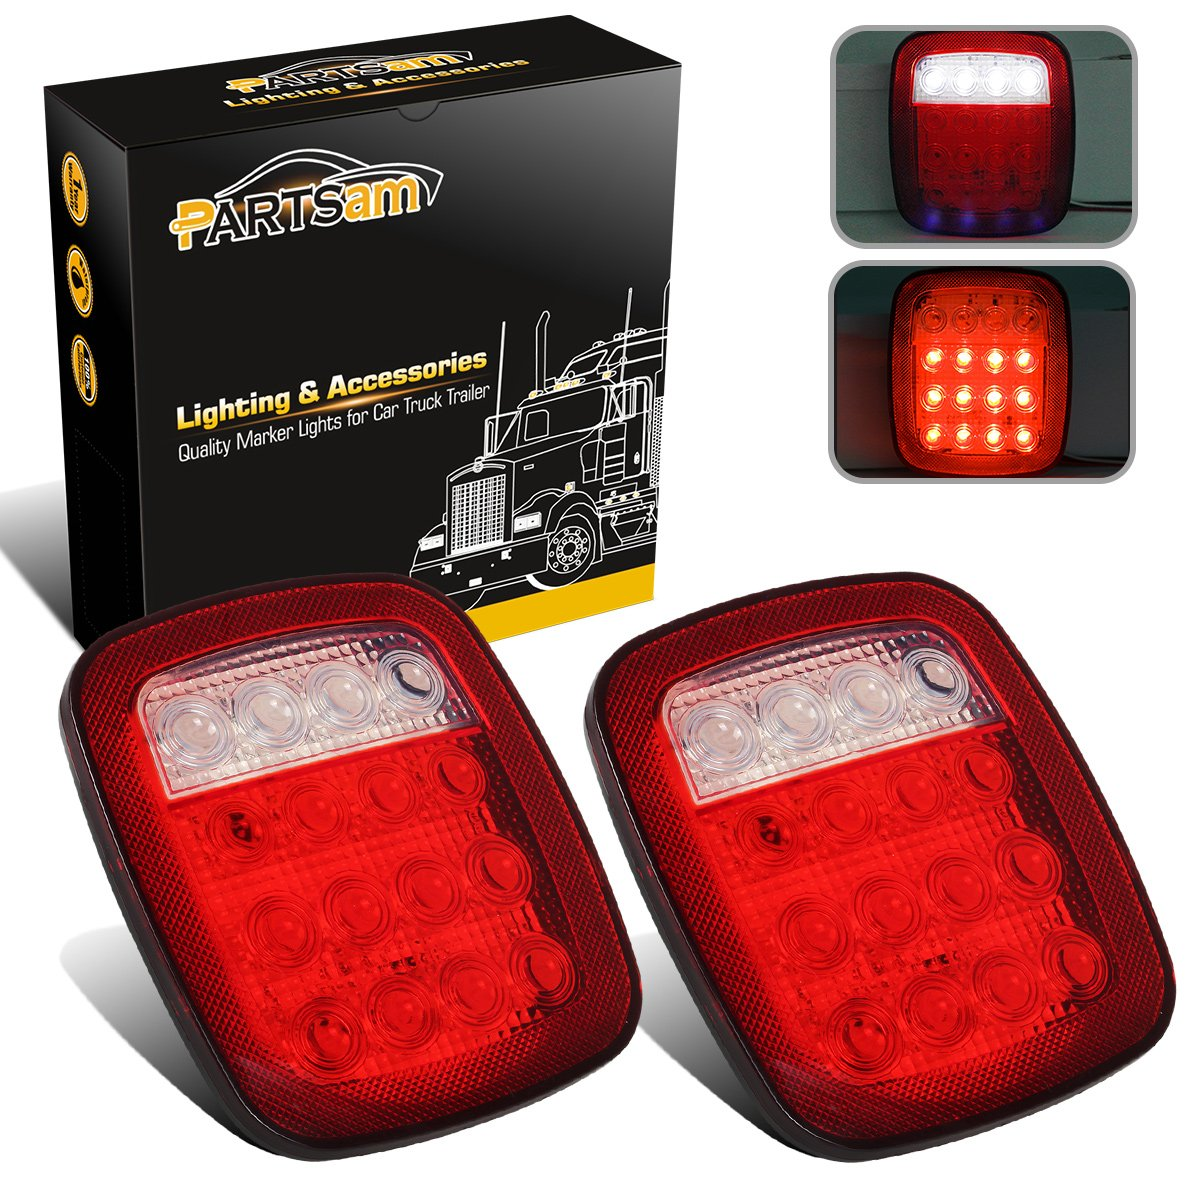 Partsam 2x Universal 16 LED Stop Tail Turn Signal Backup Reverse Brake Clearance Marker Lights Lamps Red/White for Truck Trailer Jeep YJ JK CJ Waterproof 12V